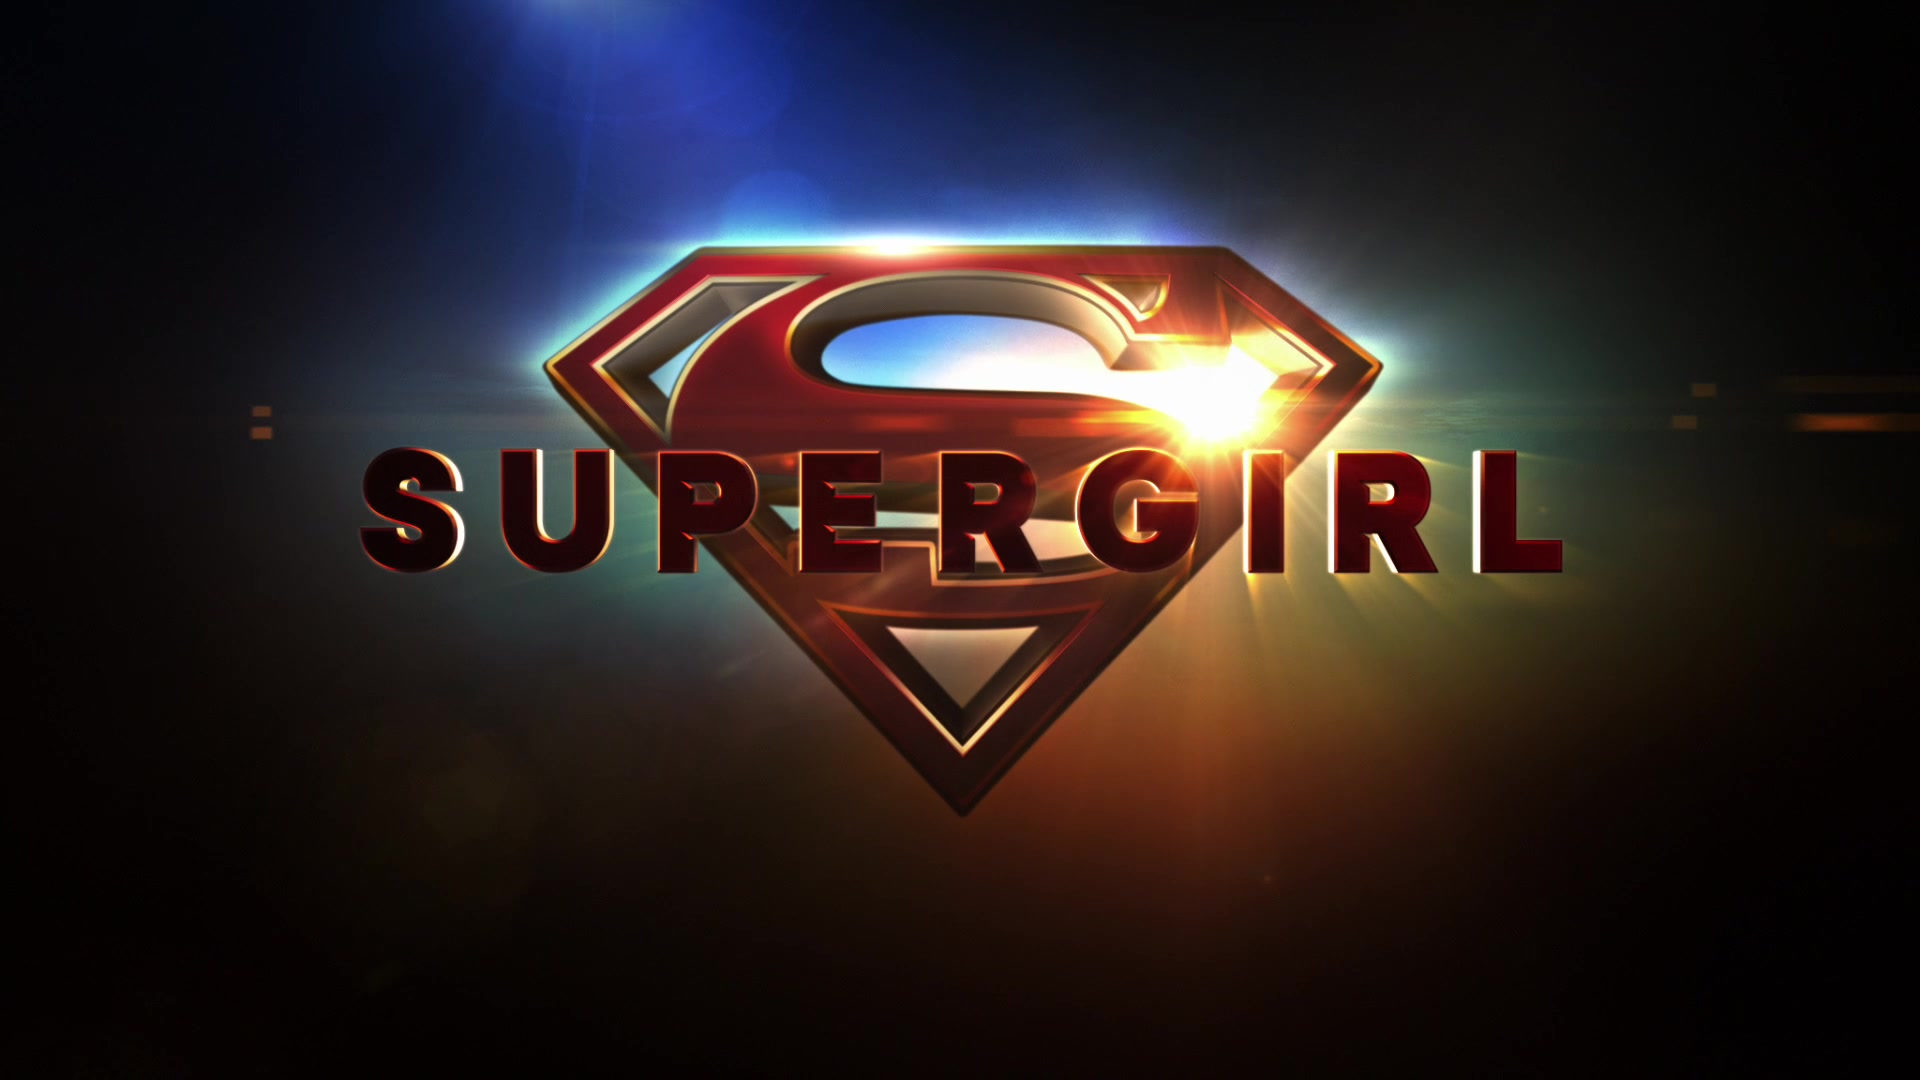 Supergirl (TV Series) Episode: Bunker Hill